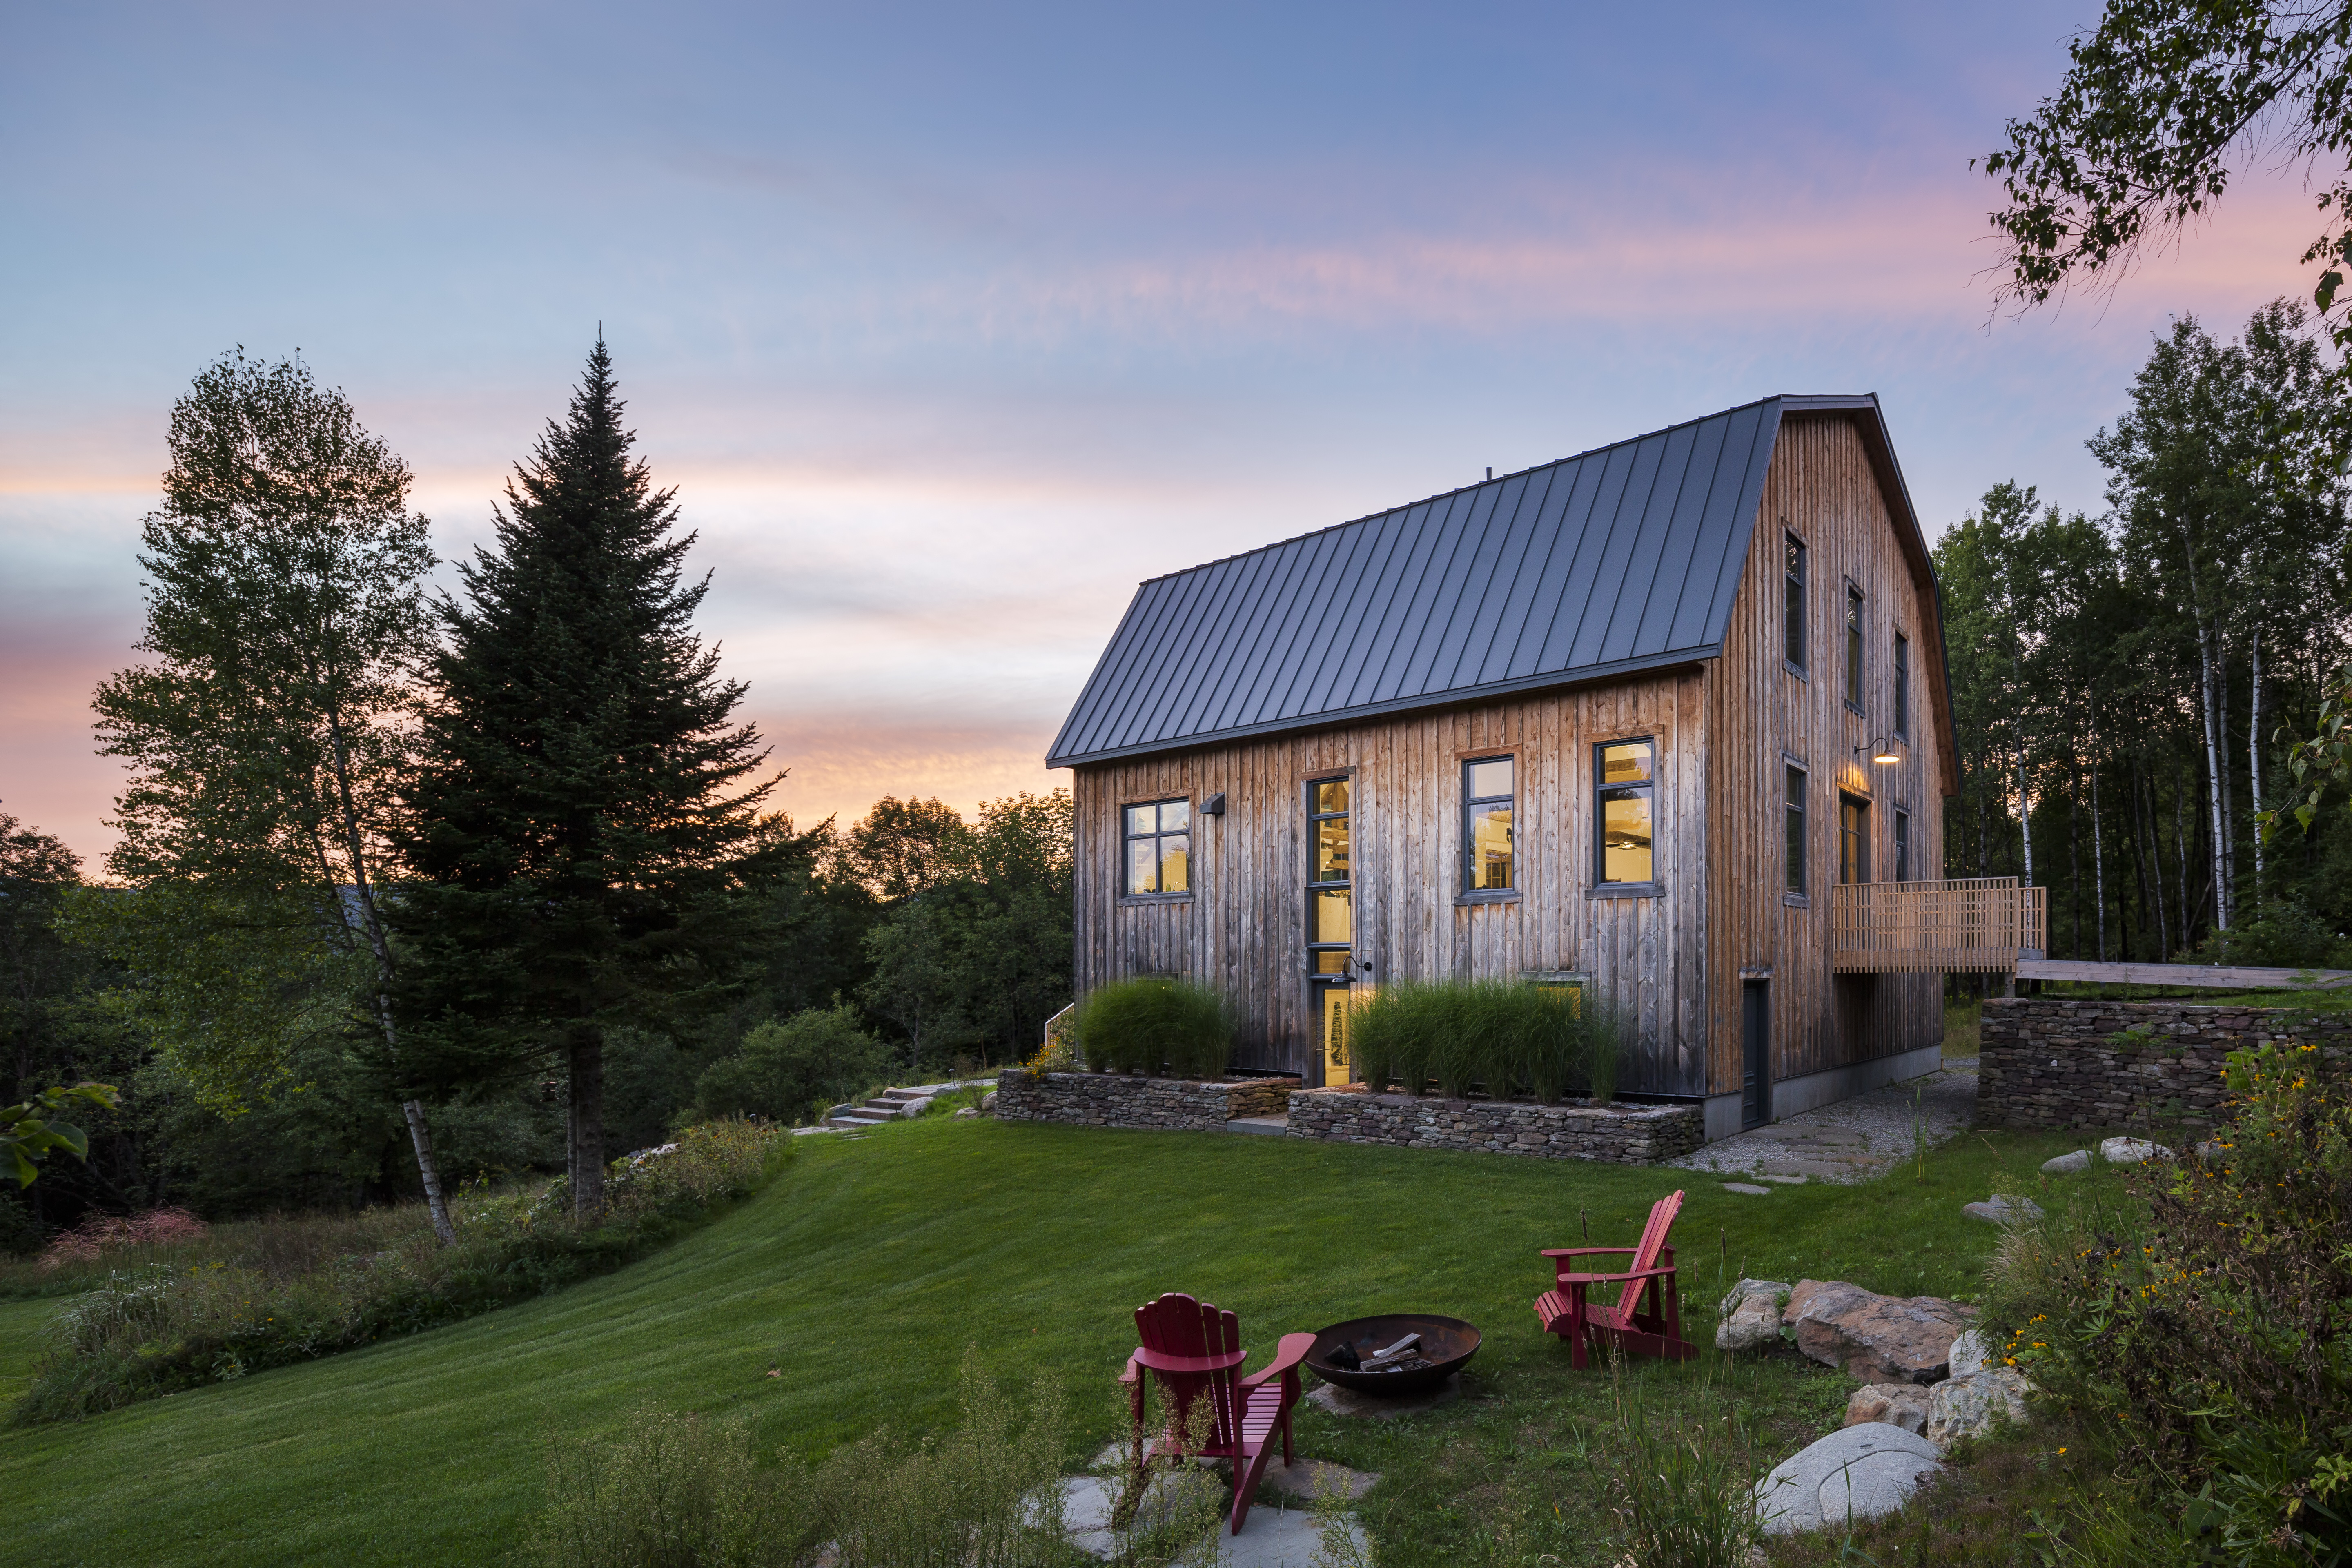 A restored barn sits on a grassy plot of land at sunset. There are large pine trees and red Adirondack chairs.